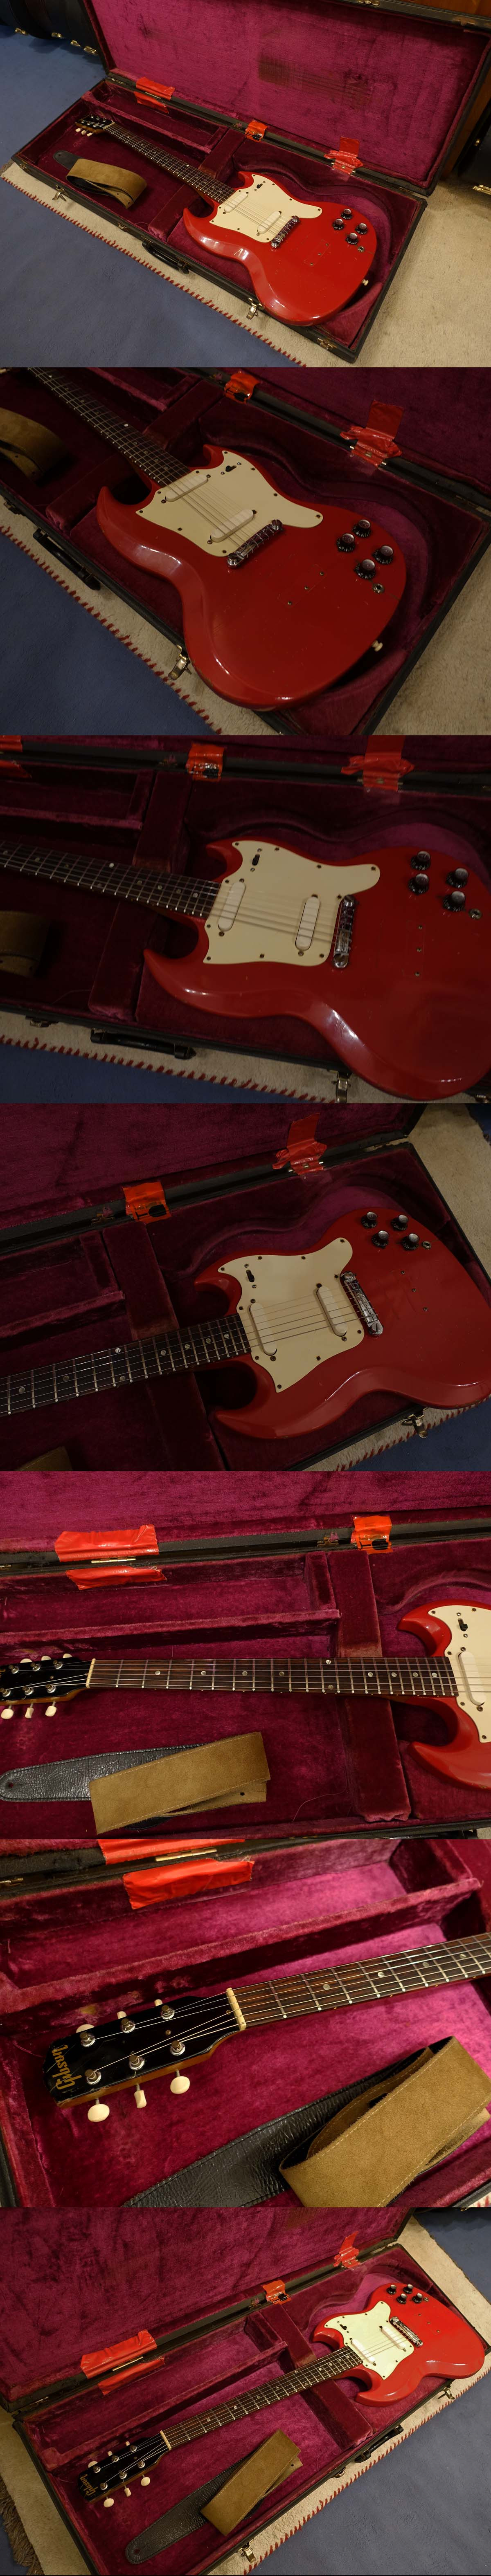 1967 Gibson SG Melody Maker (cardinal red)